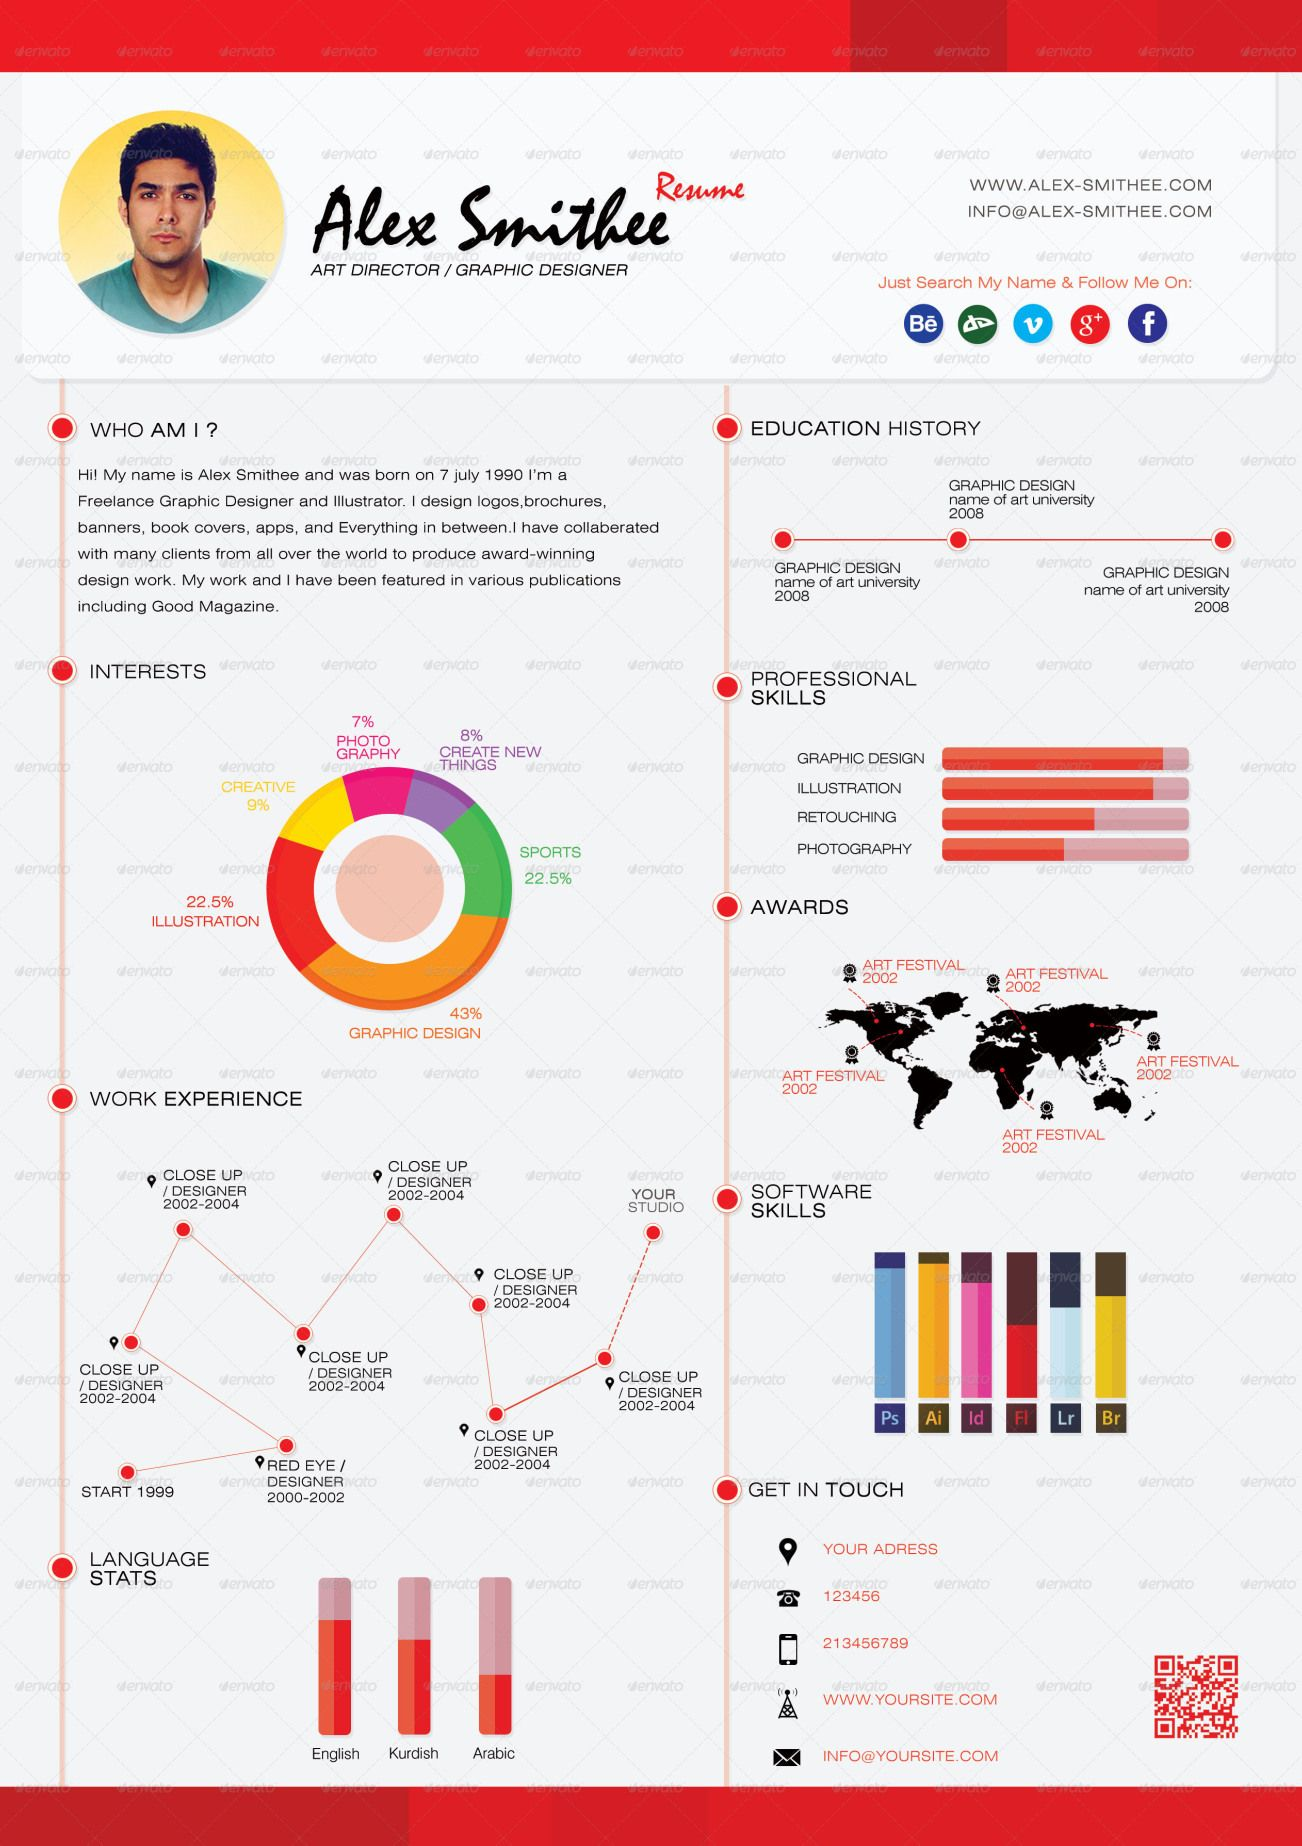 Binary options info graphic resumes peer to peer betting apps